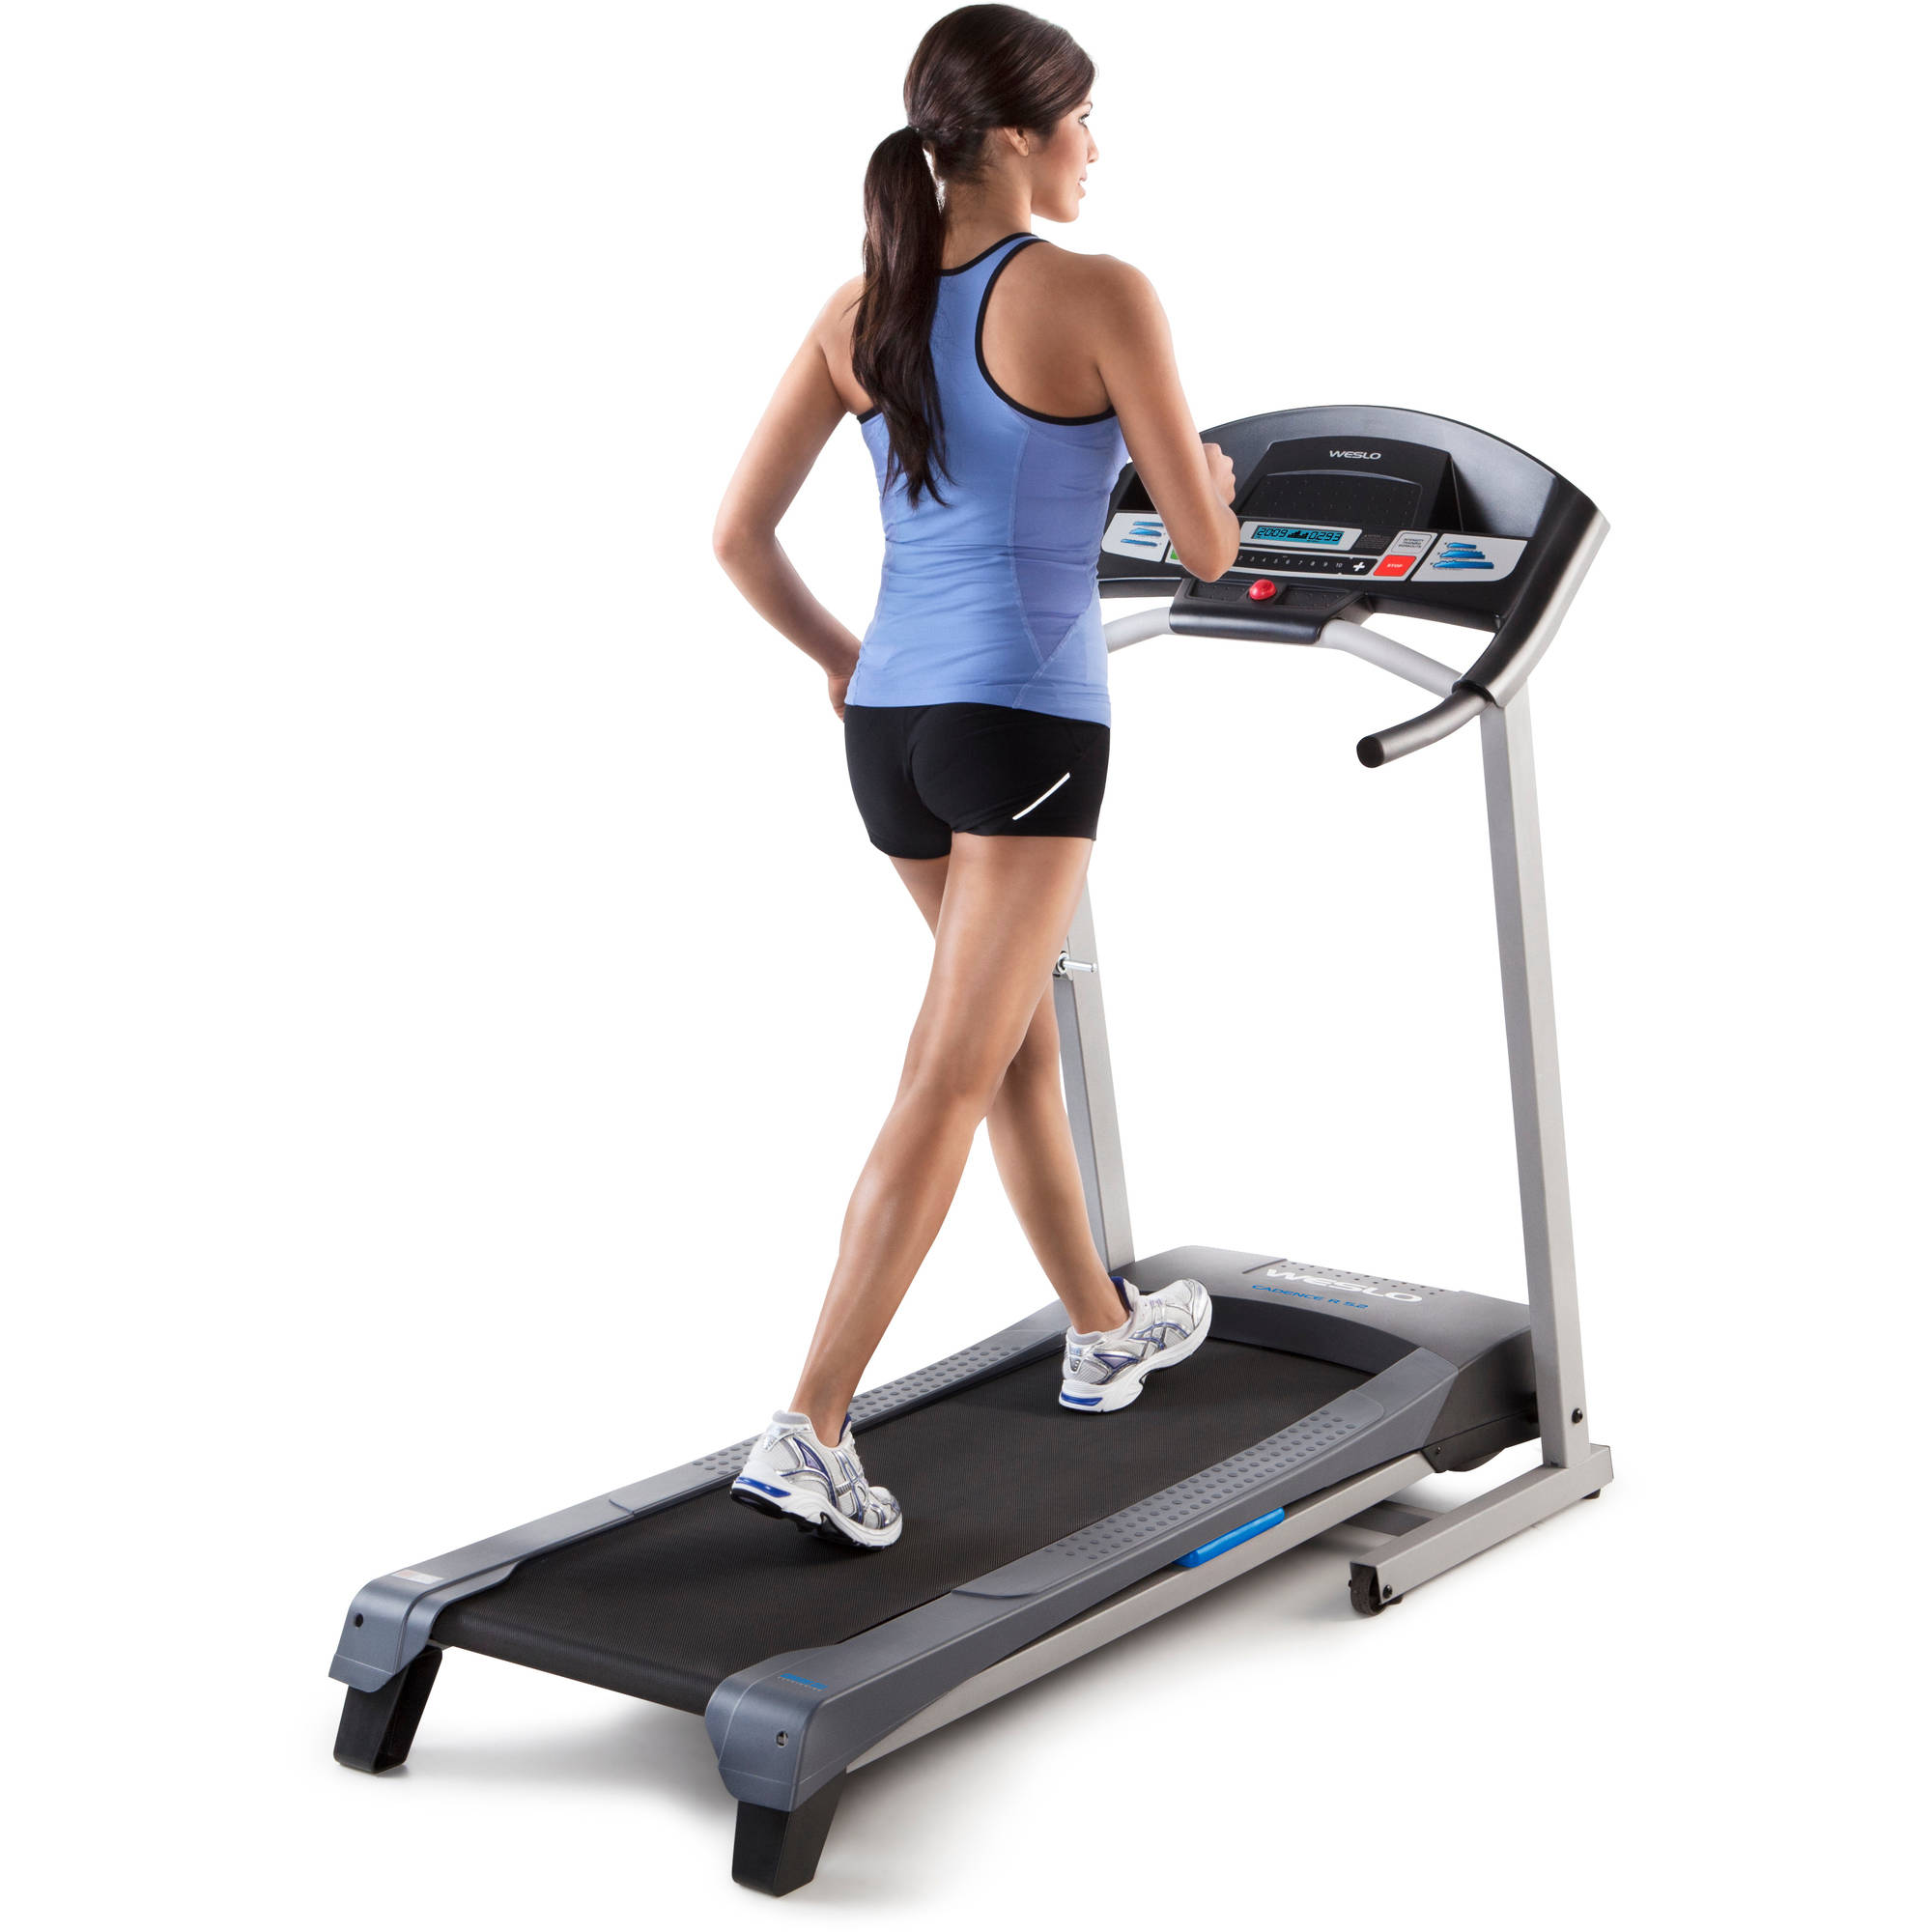 Weslo Cadence R 5.2 Folding Electric Treadmill with Adjustable Incline